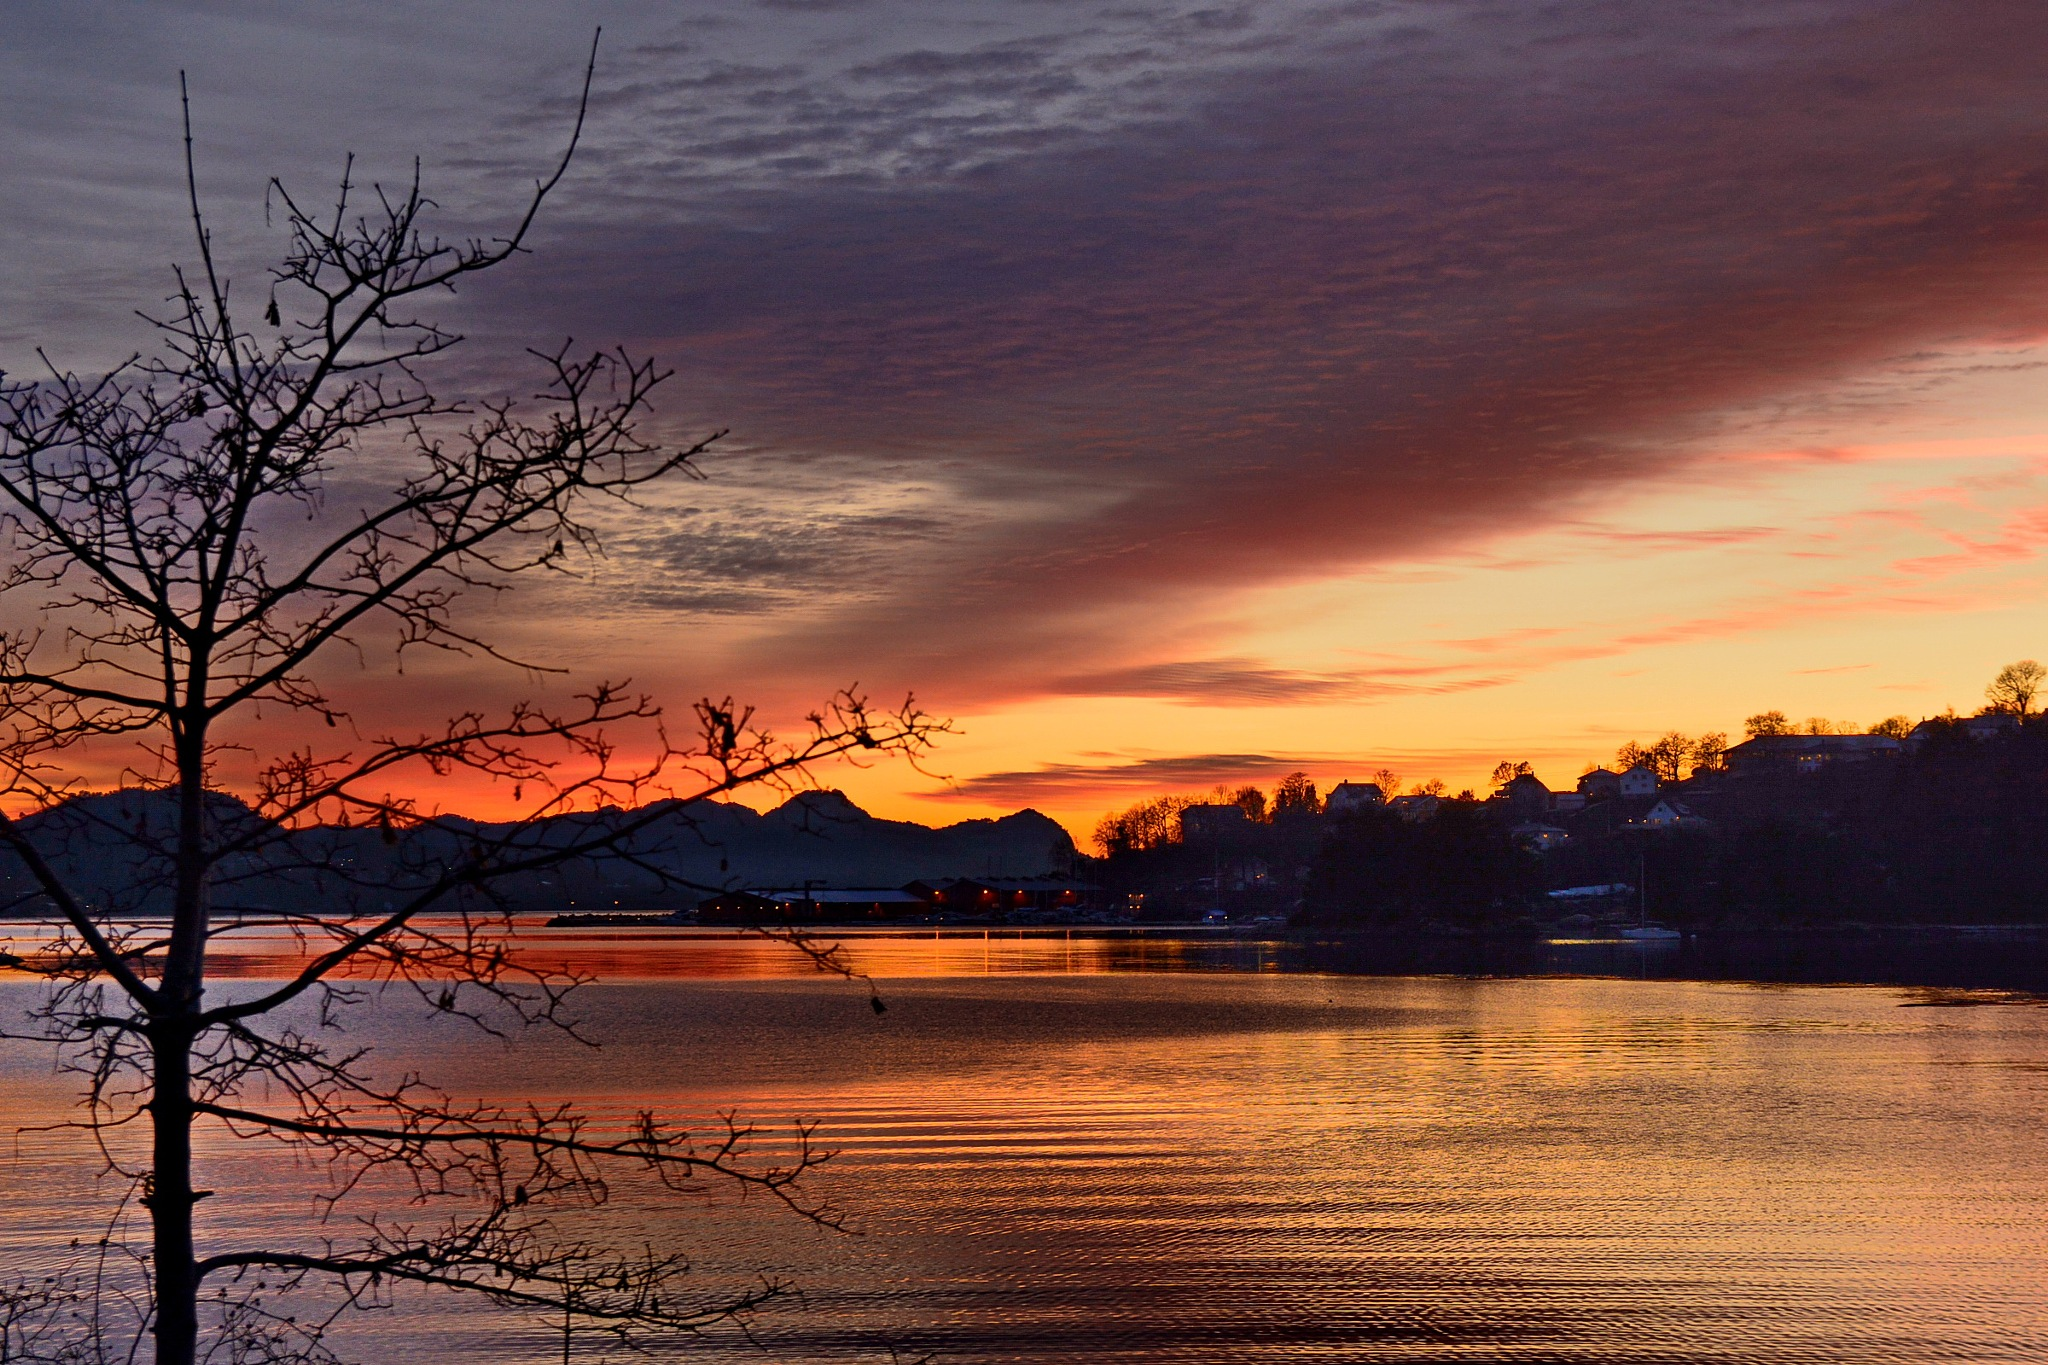 Sunset by the fjord. by Per Molvik